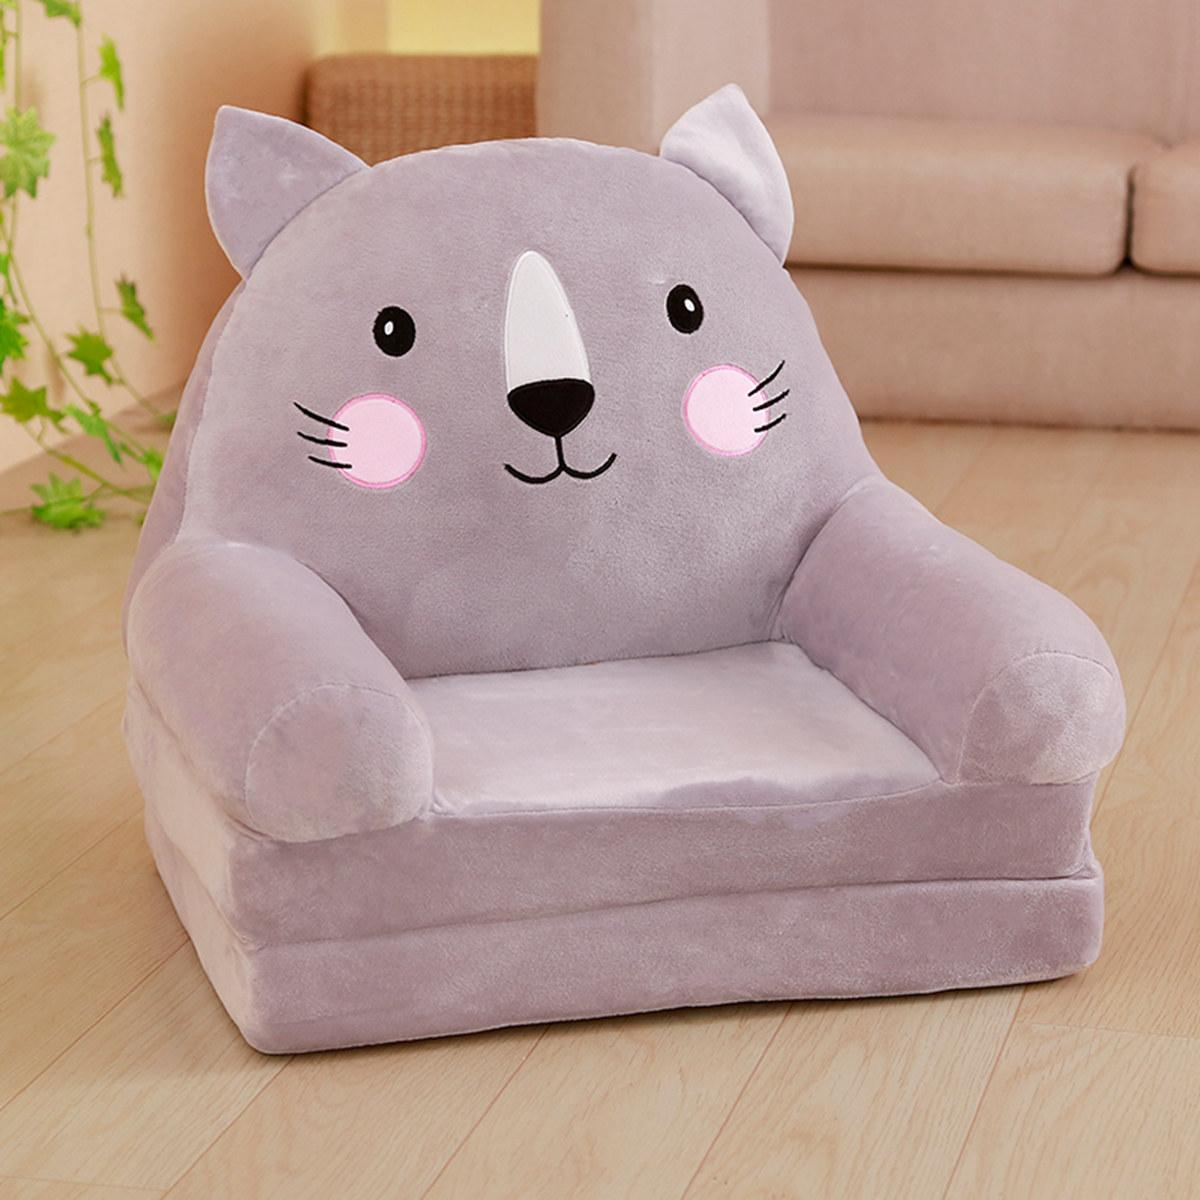 Cartoon Children Lazy Sofa Chair Single Person Tatami Modern Minimalist Bedroom Small Sofa Living Room Princess Style By Taobao Collection.